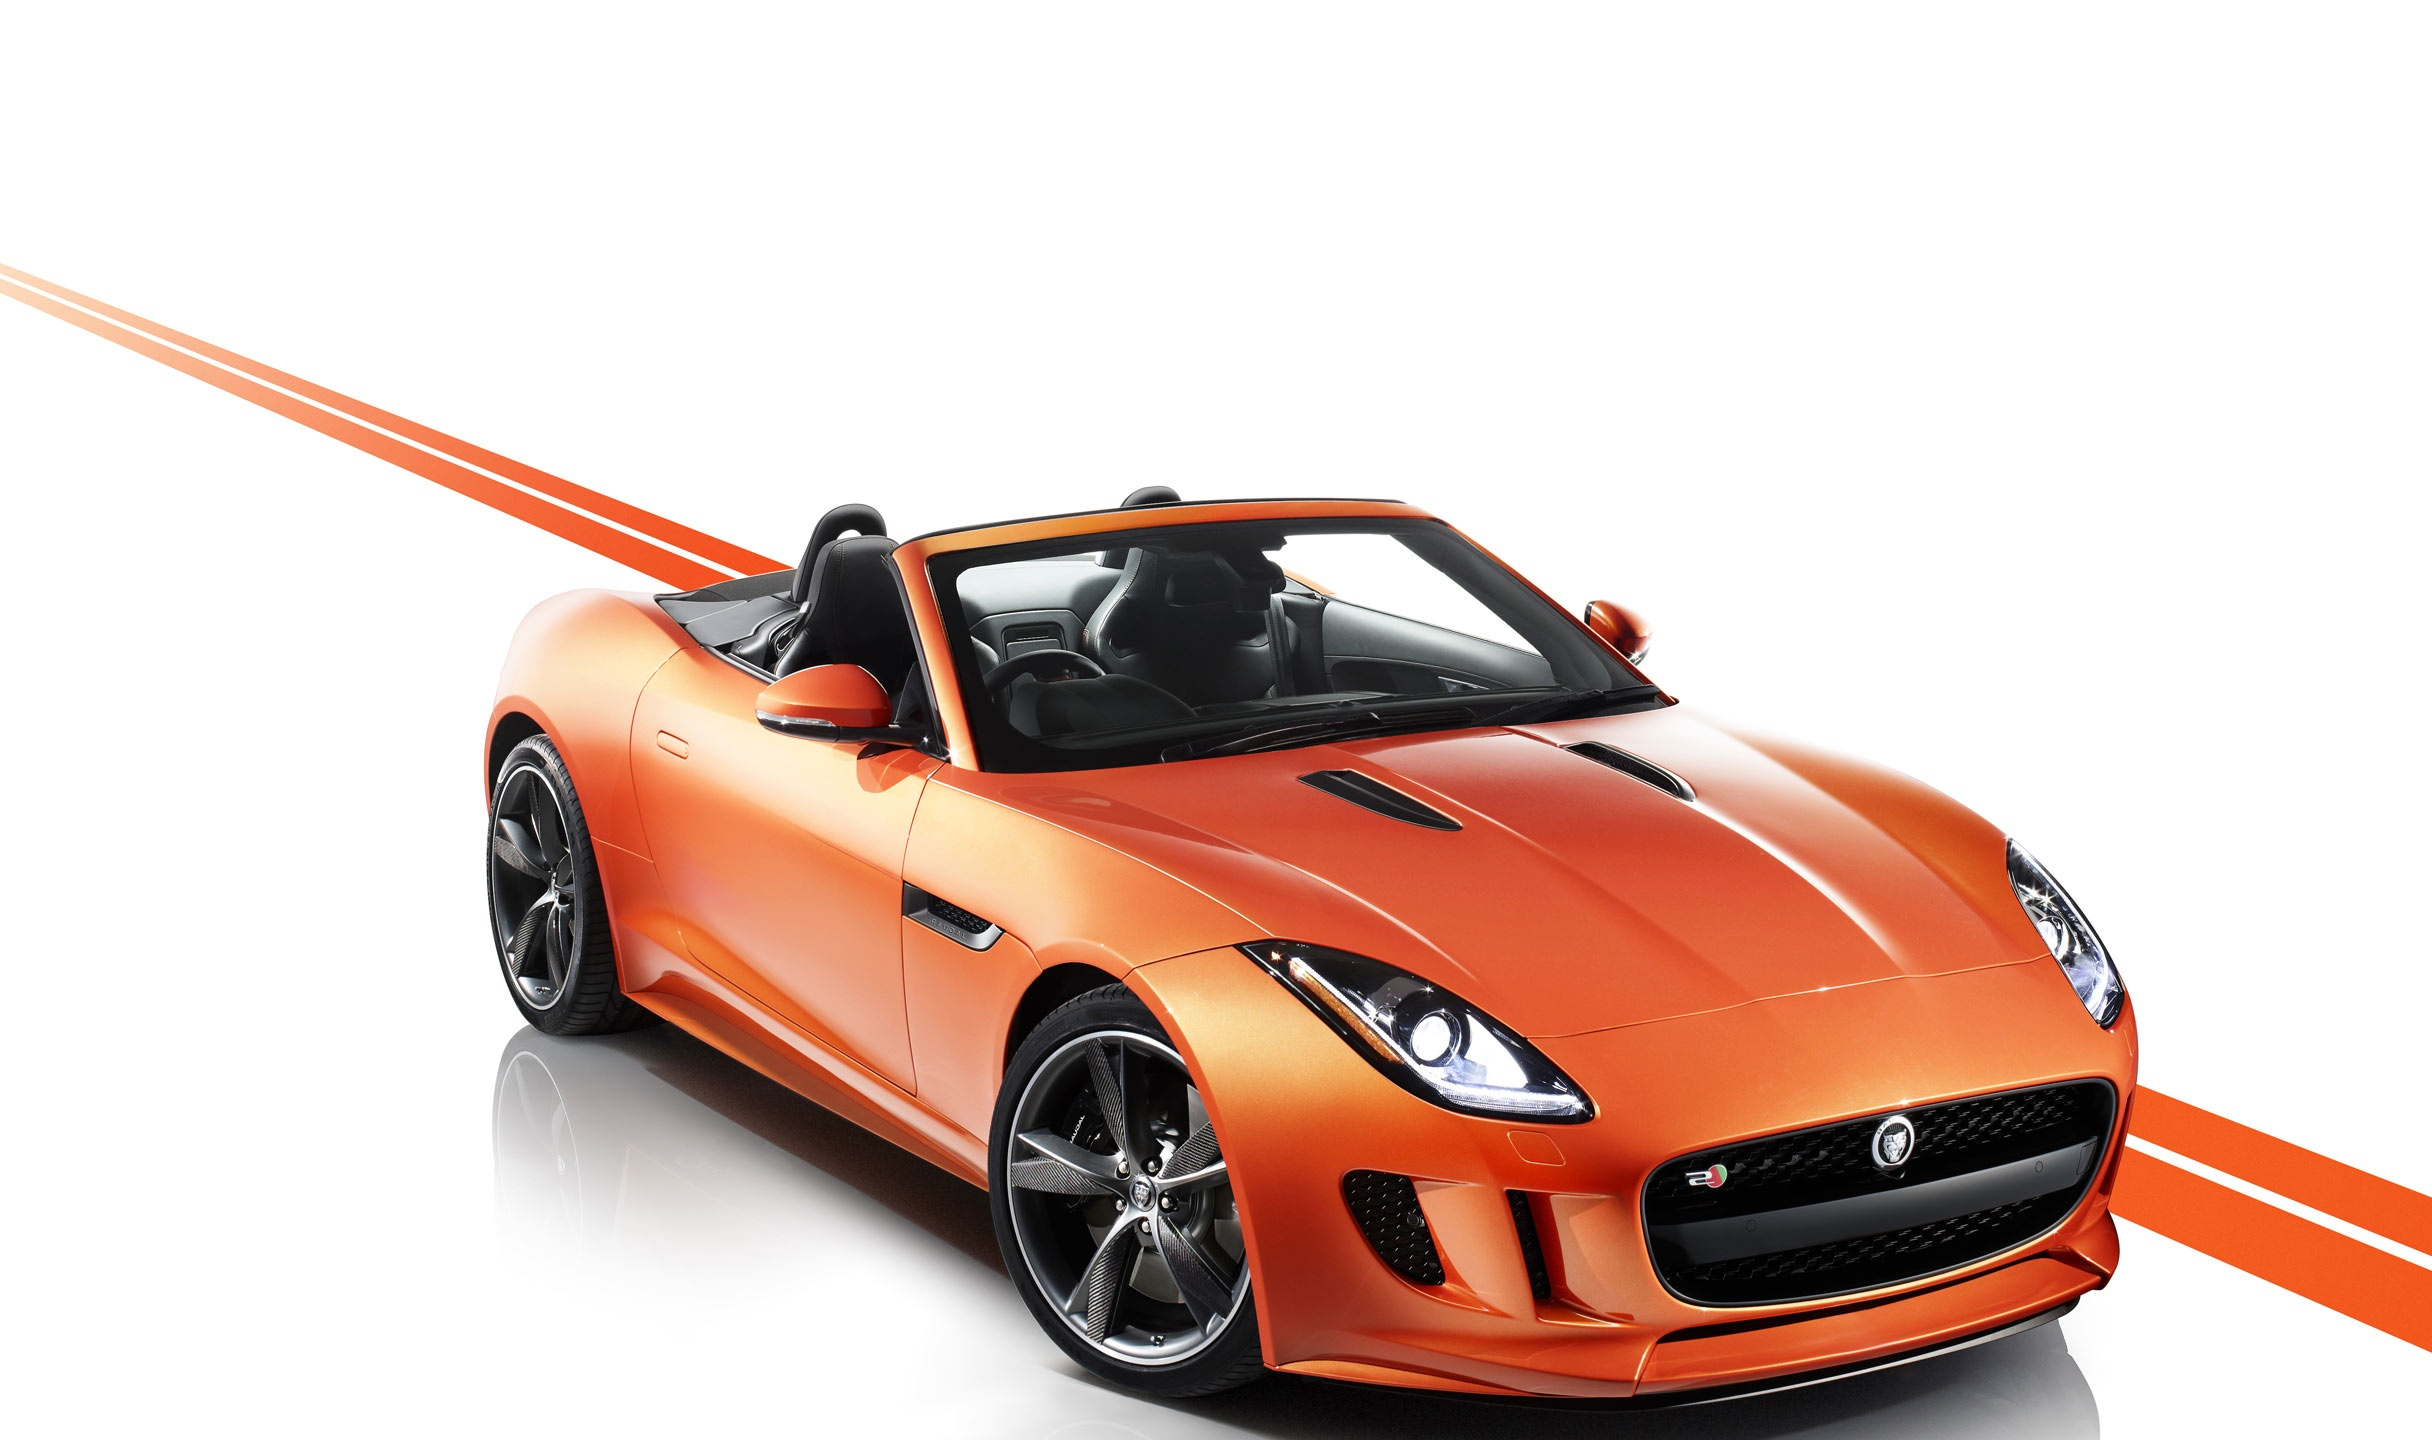 Jaguar F Type 2013 Wallpaper | HD Car Wallpapers